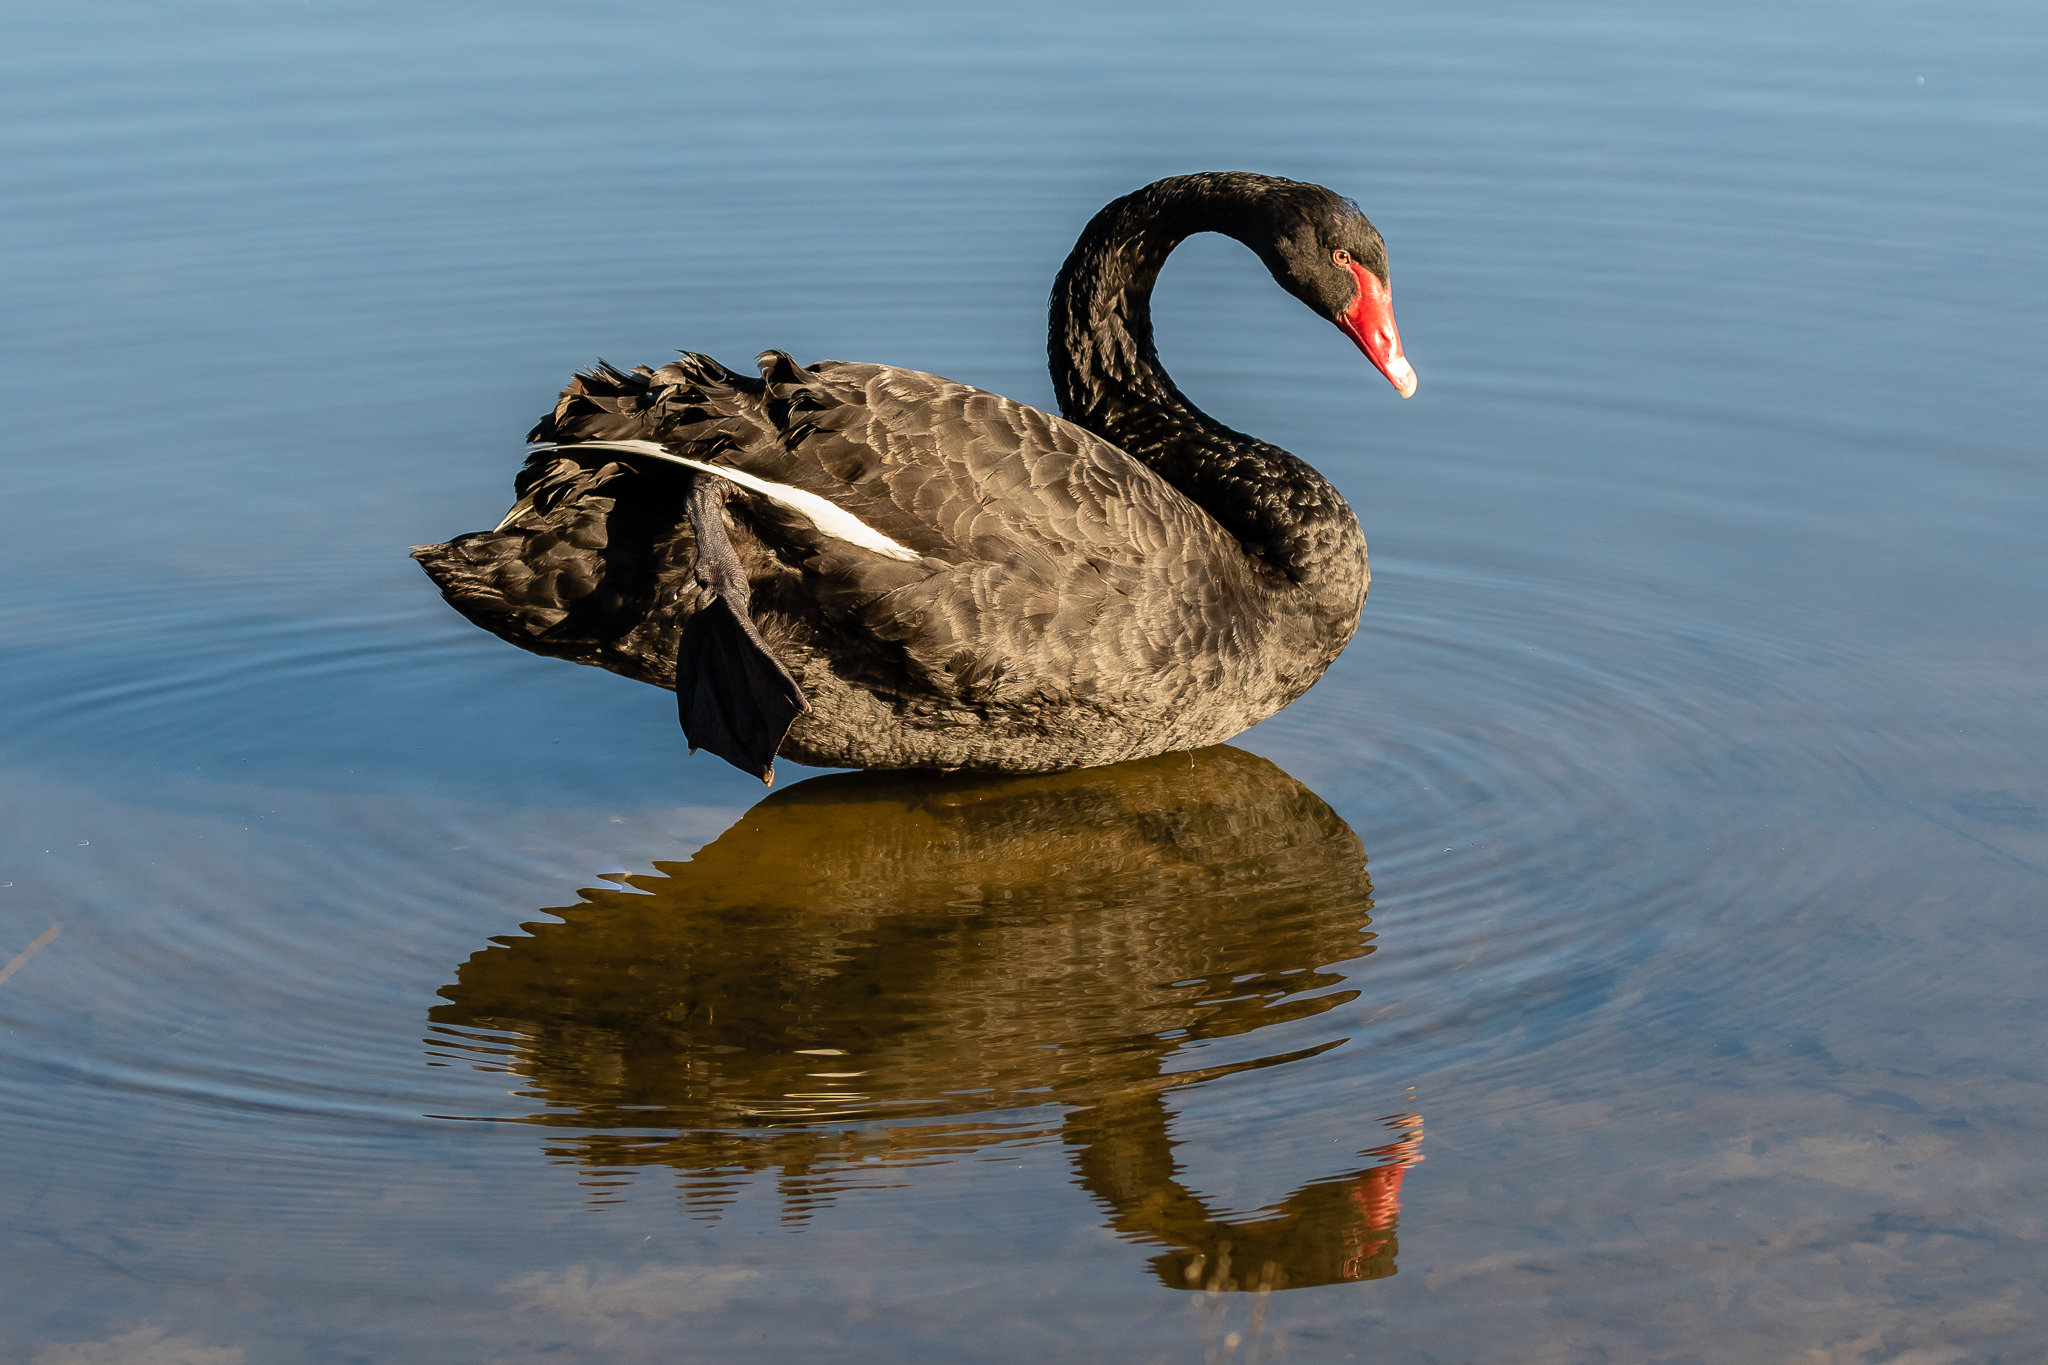 Black Swans (1.4 m) cover most of Australia, in most wetland types. They feed on aquatic vegetation in shallow water. They gained iconic status when early explorers discovered not all swans were white.